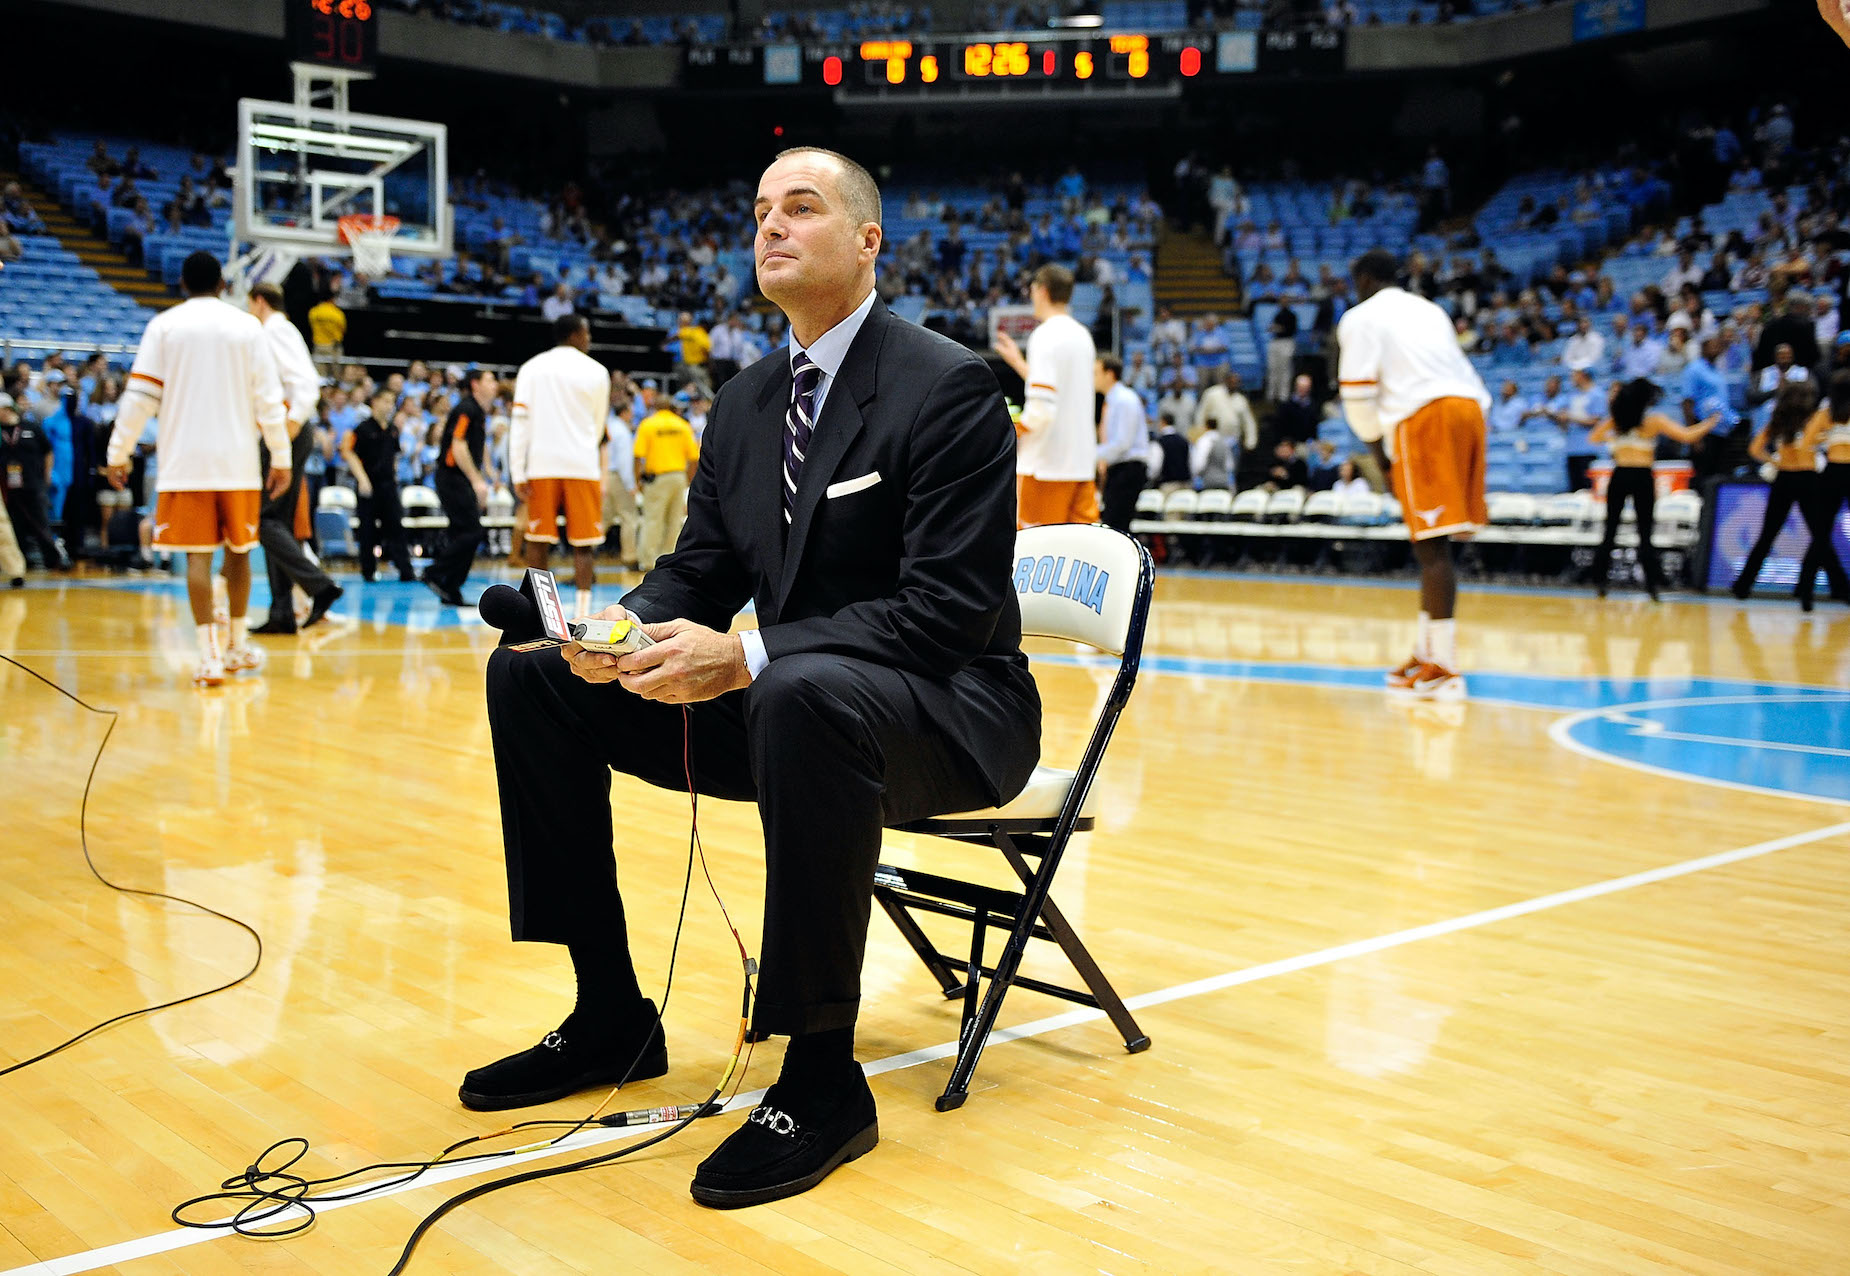 Former player turned ESPN analyst Jay Bilas sits on the court pregame